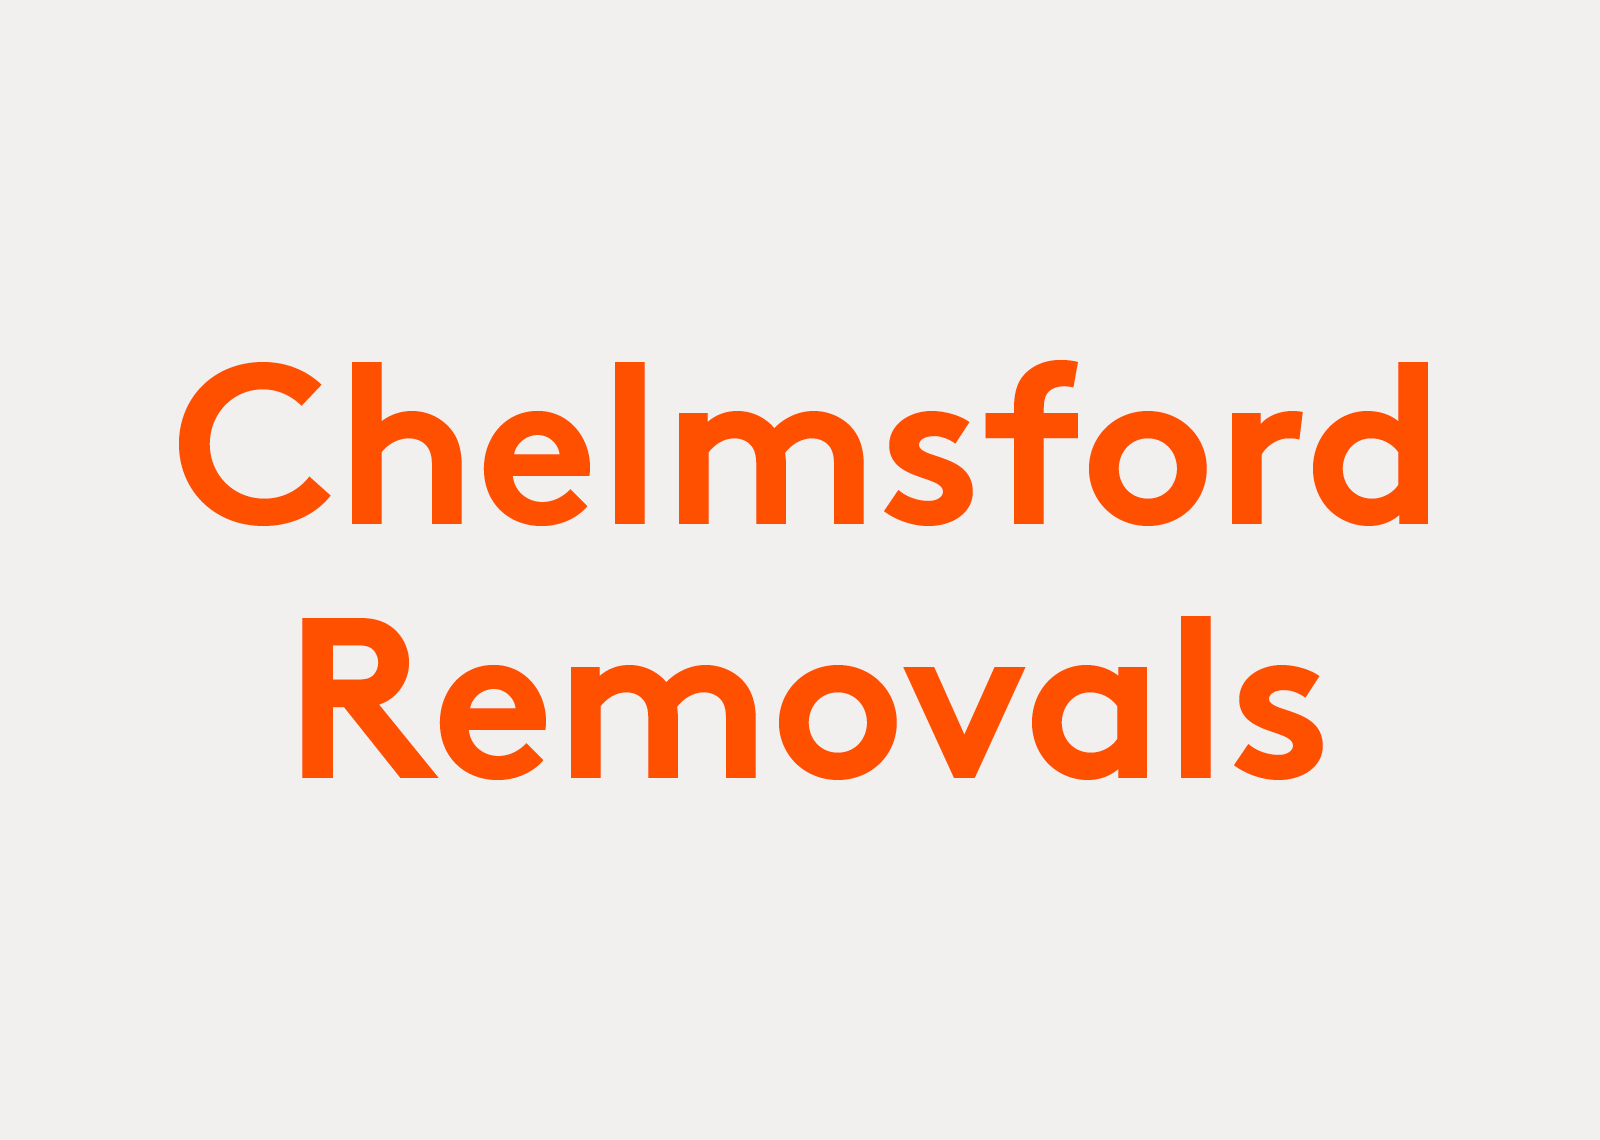 Chelmsford Removals